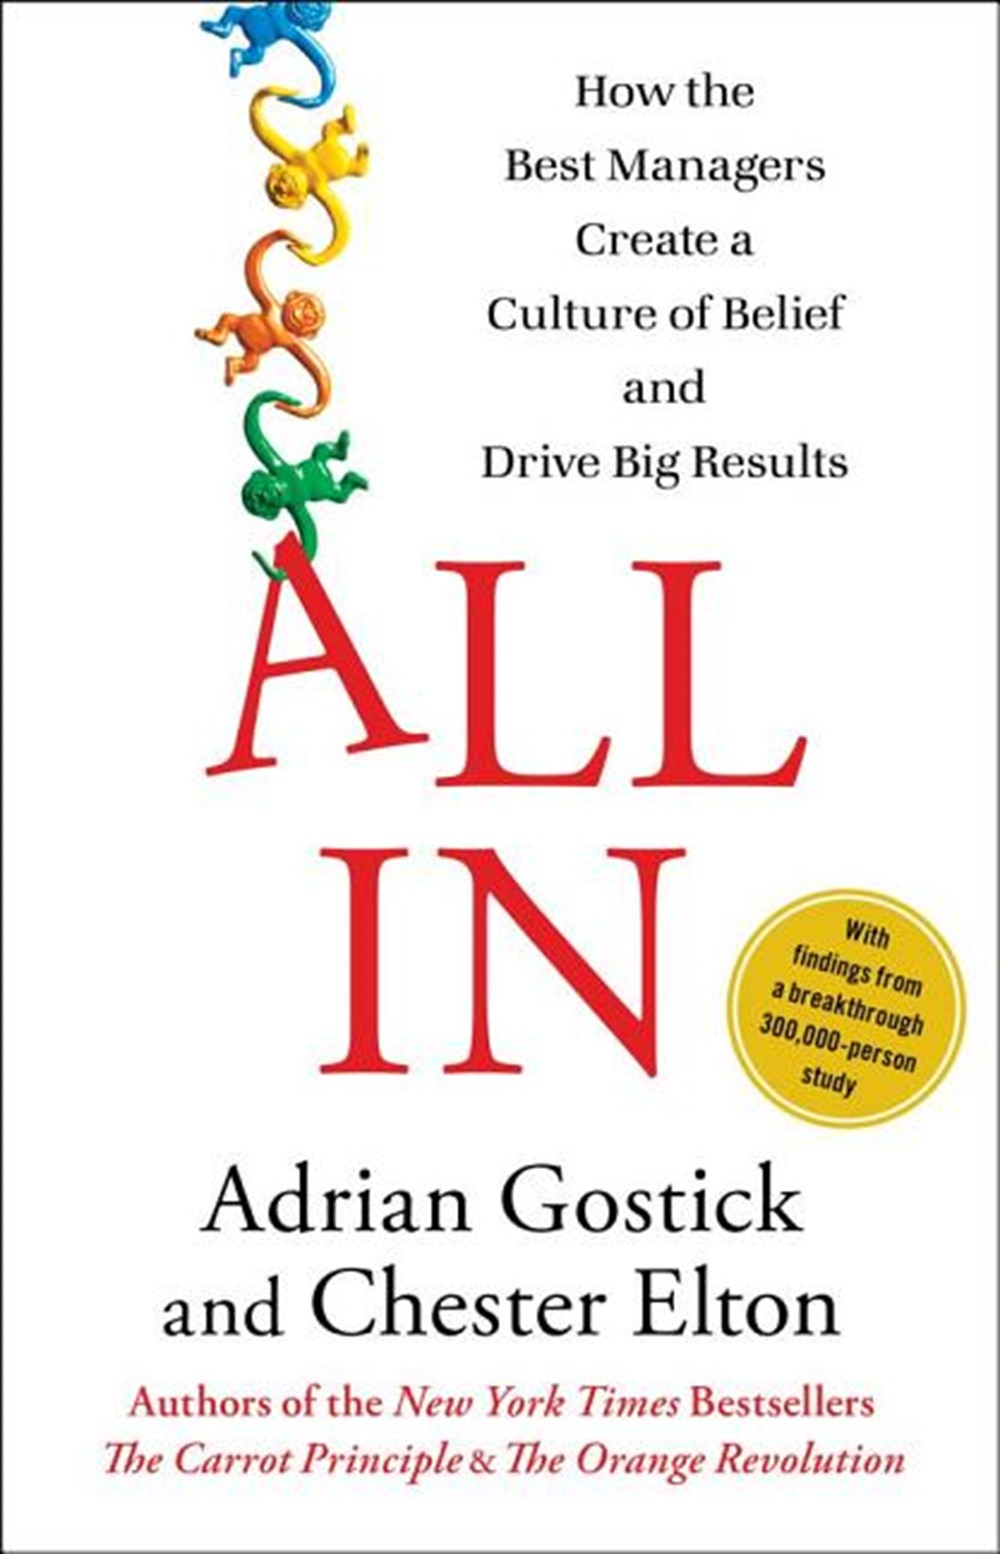 All in How the Best Managers Create a Culture of Belief and Drive Big Results